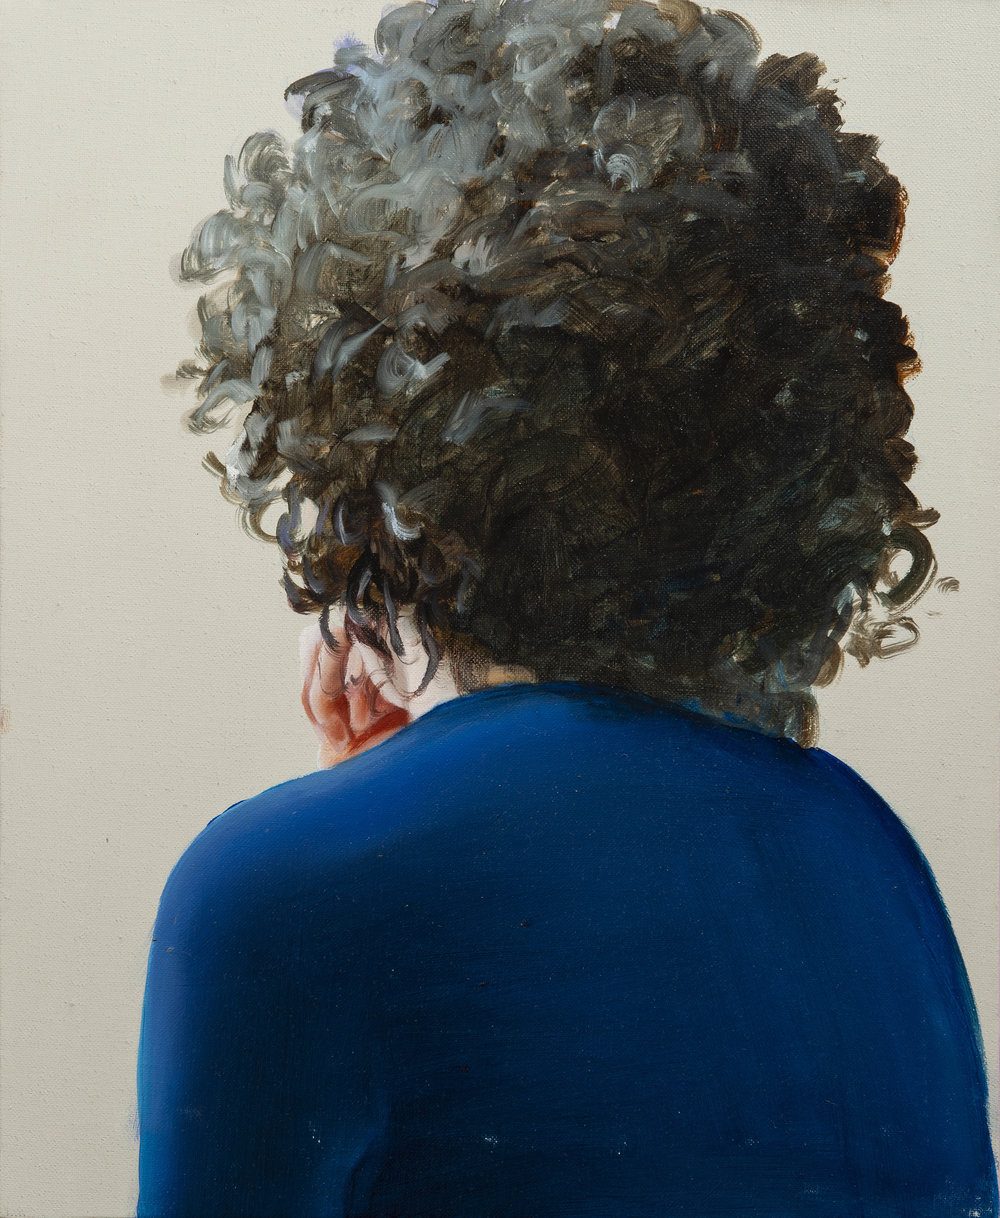 "The sweetness of your gaze   20"" x 16"". oil on linen. 2018"